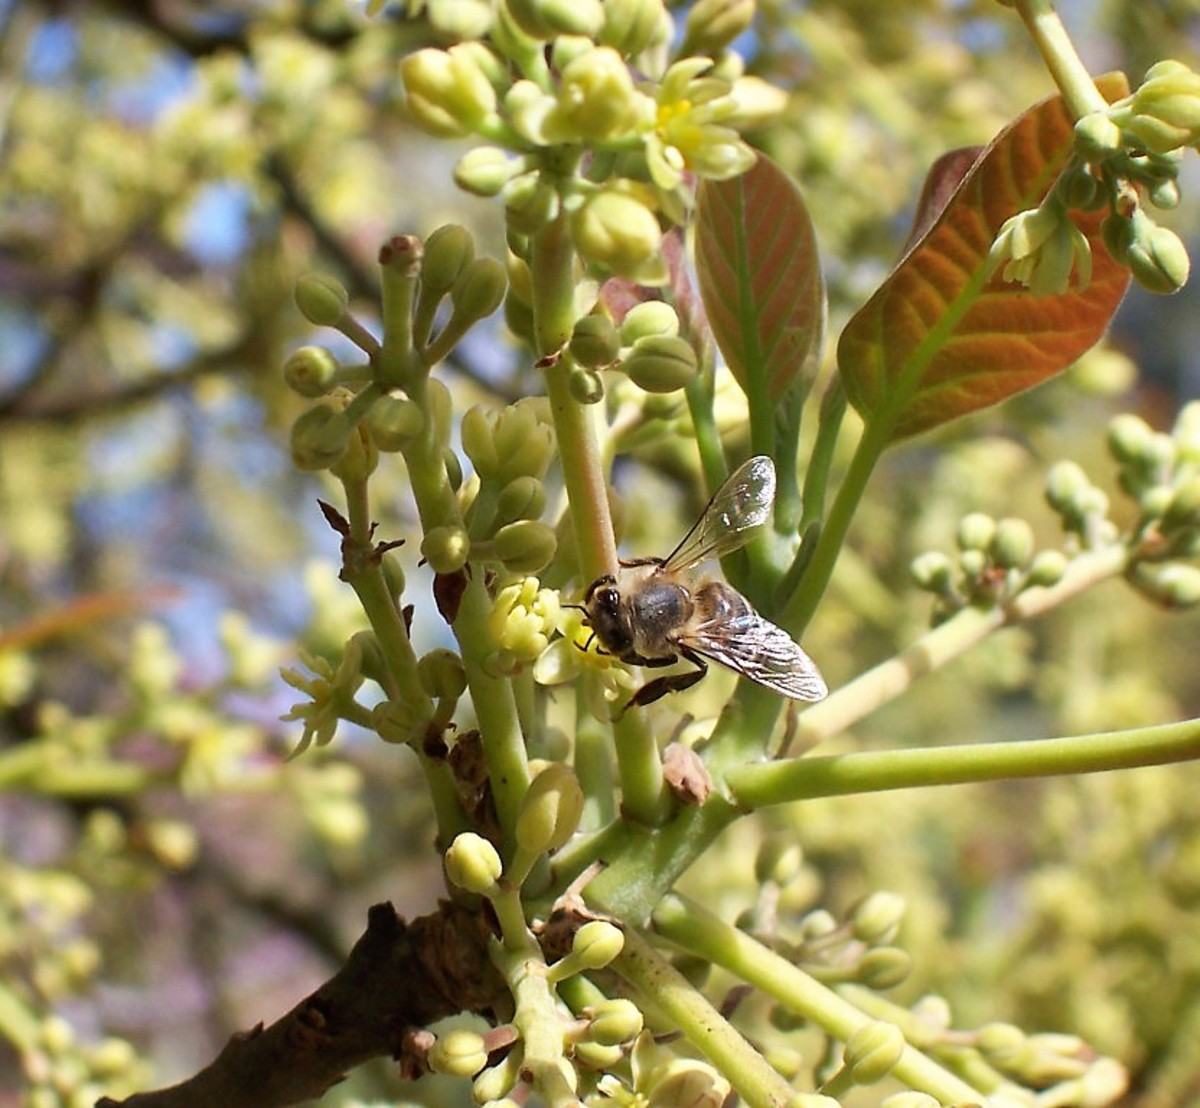 Young leaves, flowers, and flower buds of an avocado tree